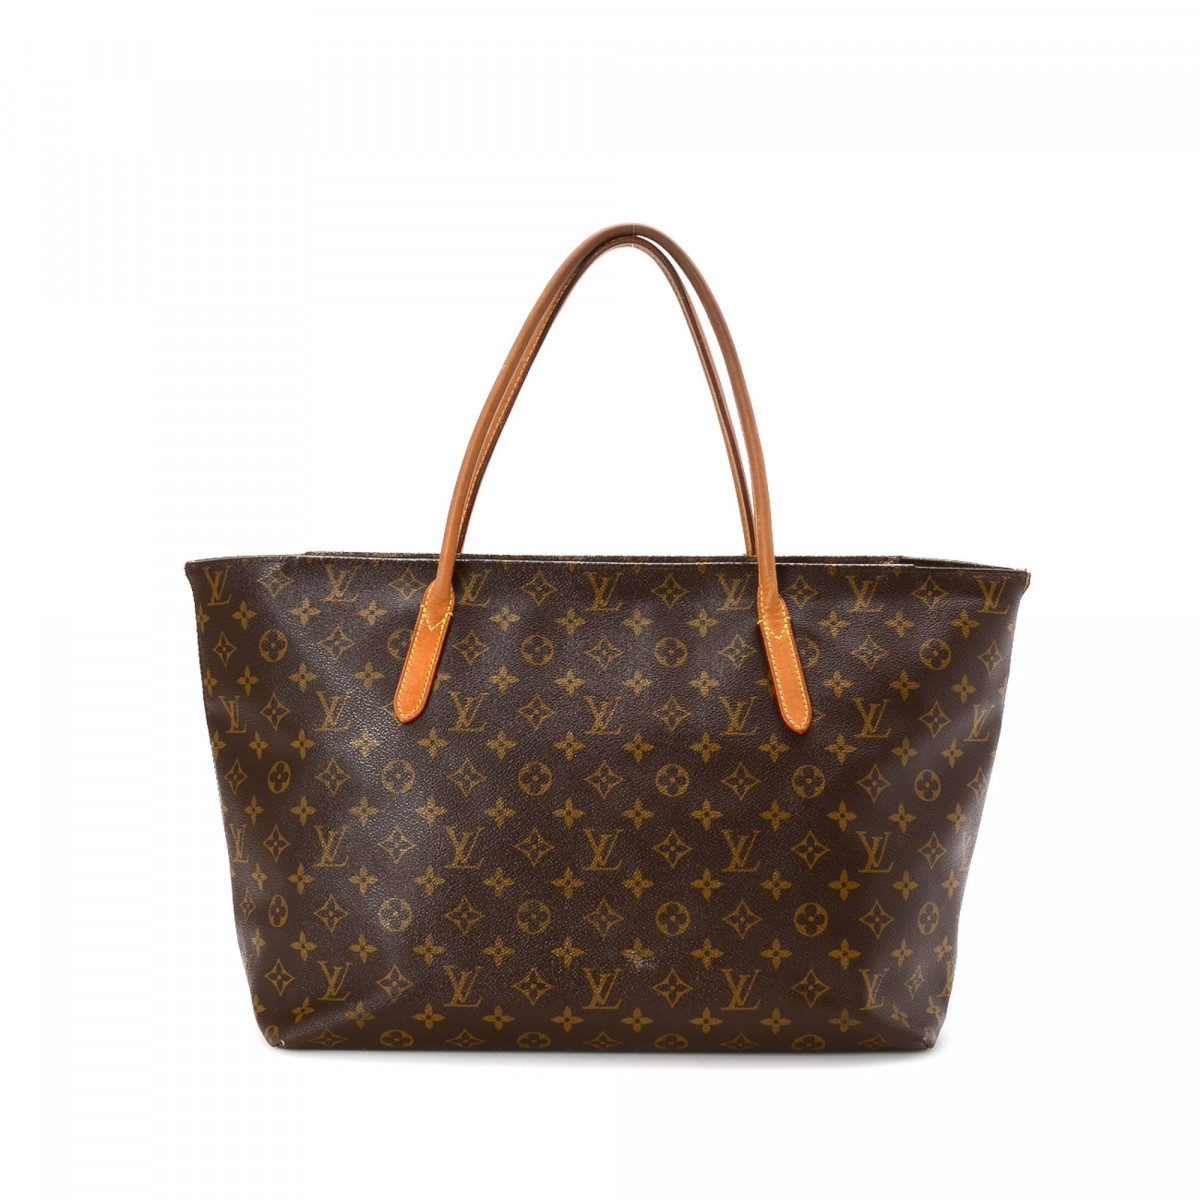 louis vuitton outlet uk real